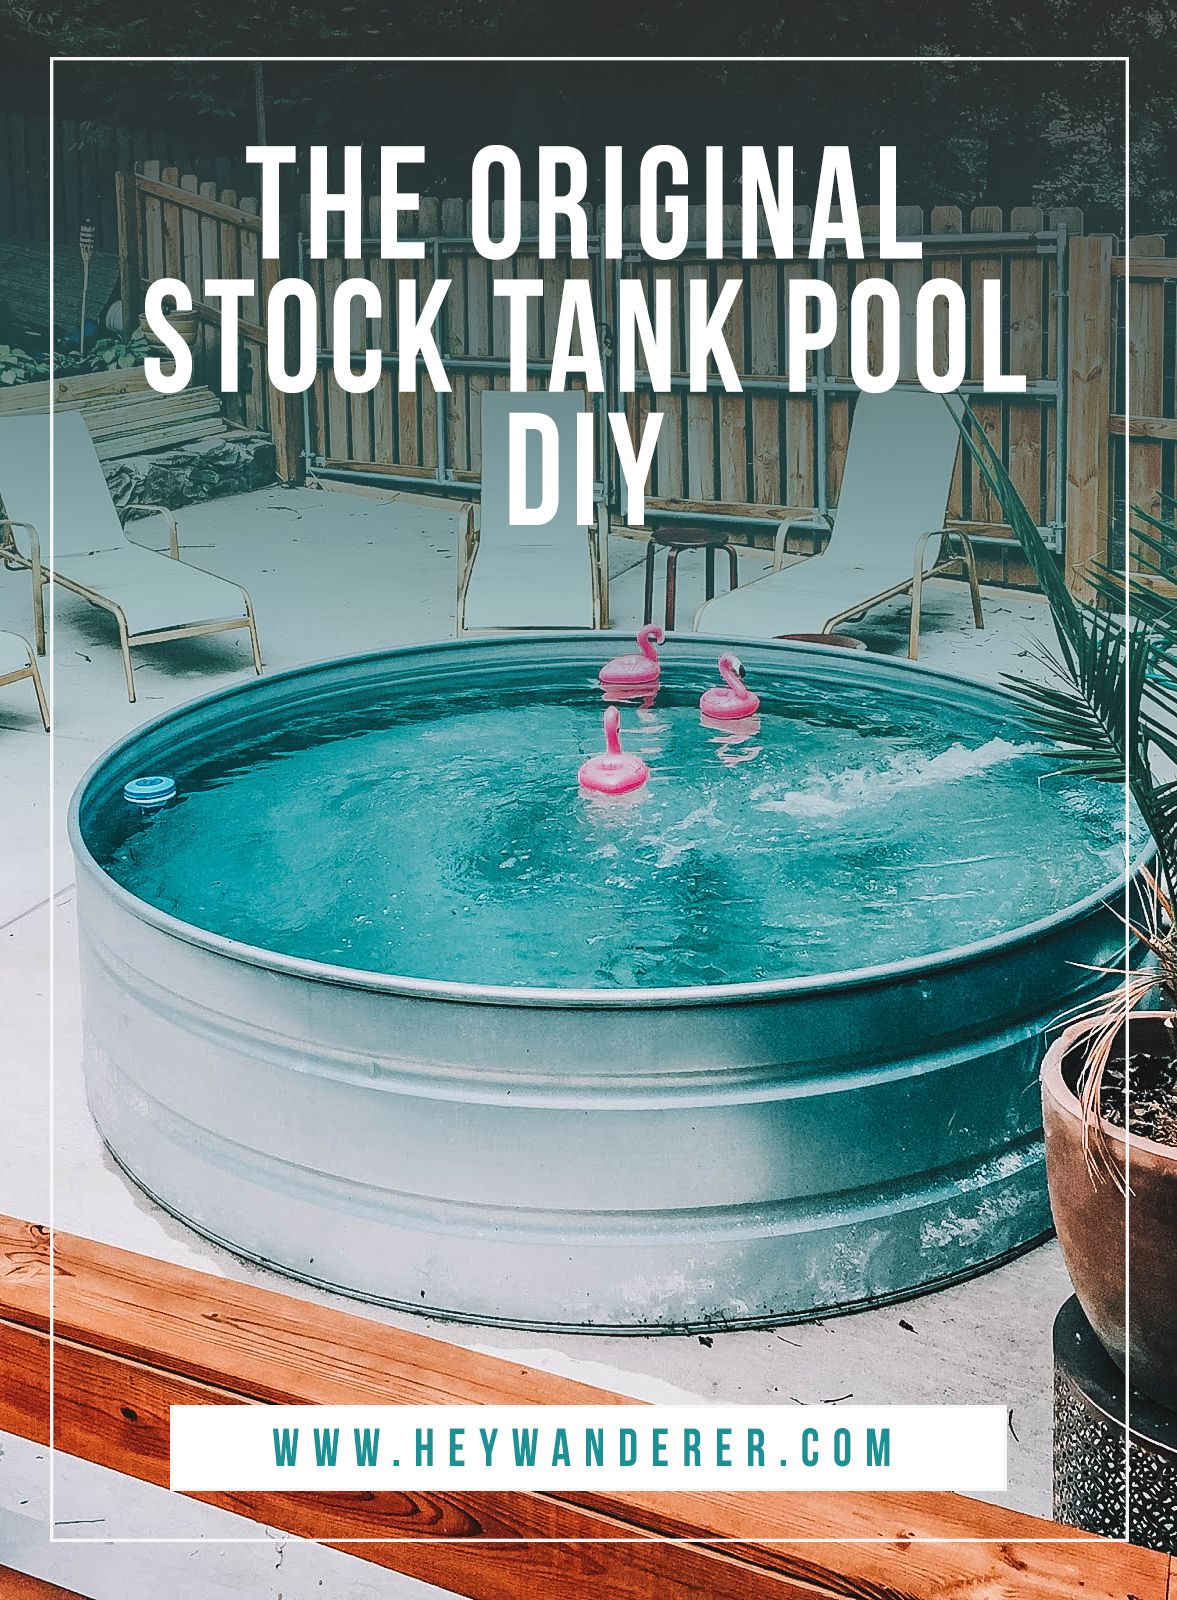 Pool Kaufen Coop Stock Tanks Stock Tank Pool Tractor Supply Stocktankpool